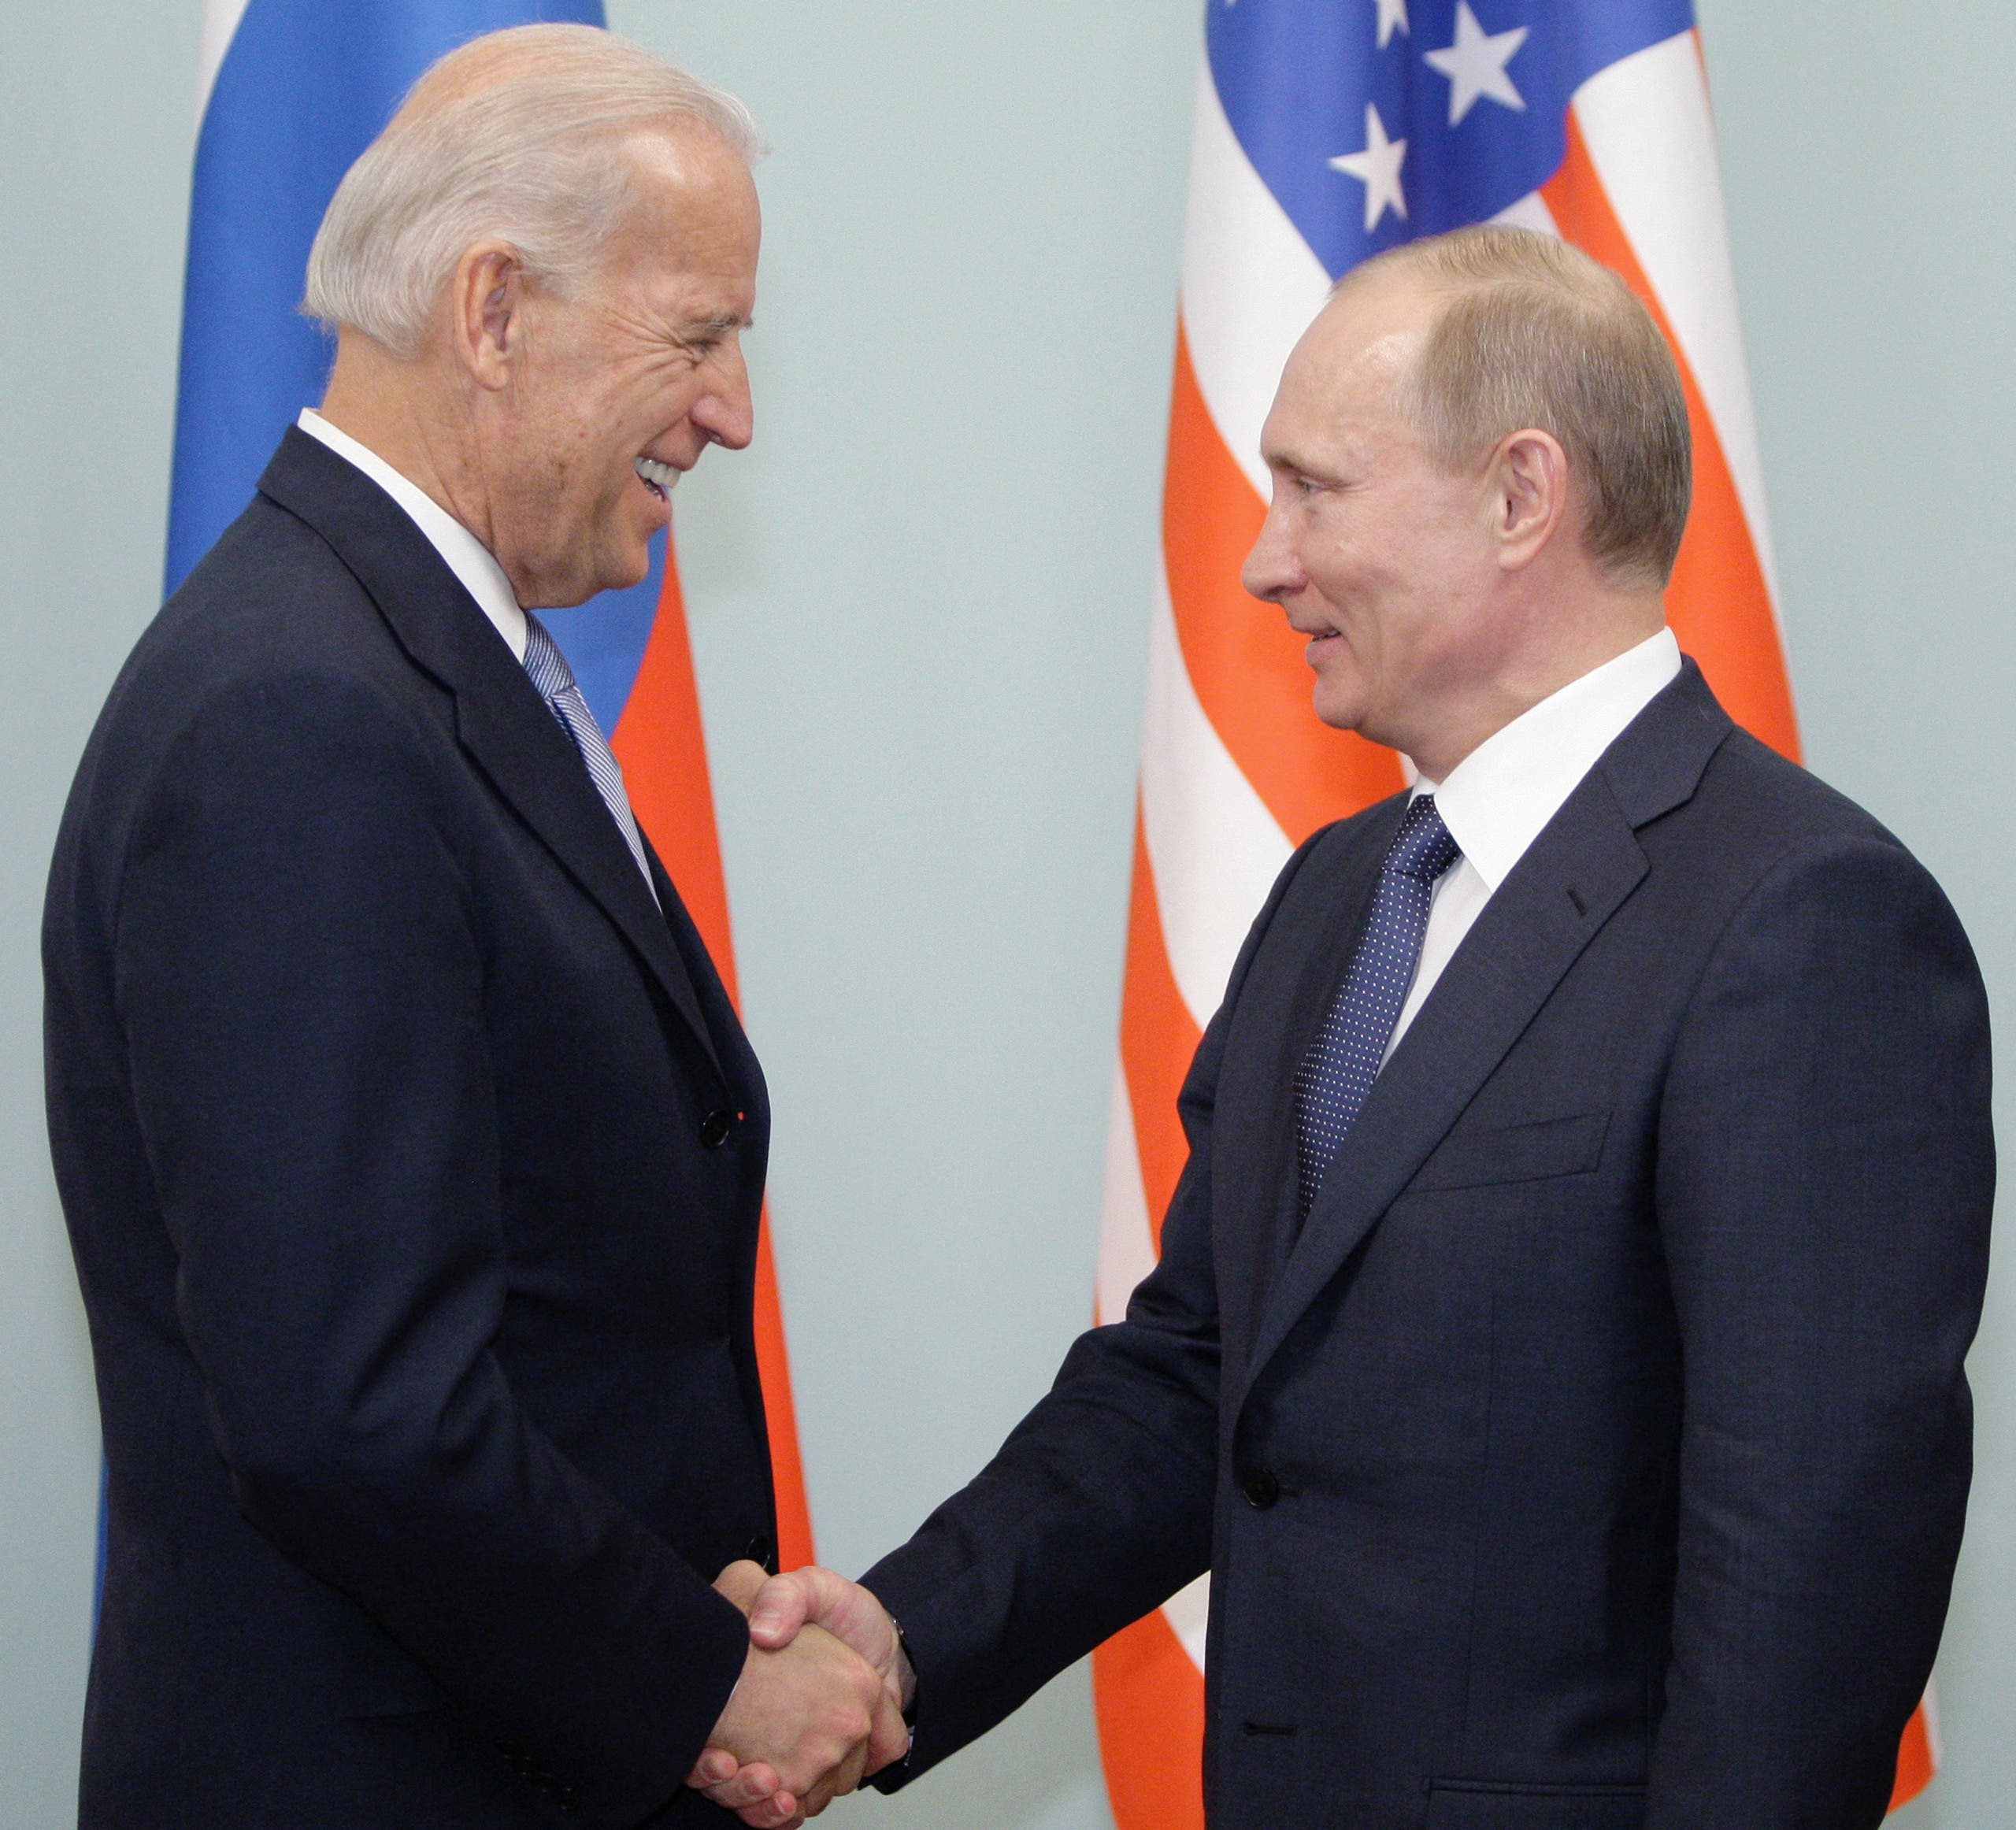 Putin: There is a common interest with Washington and we can work together effectively